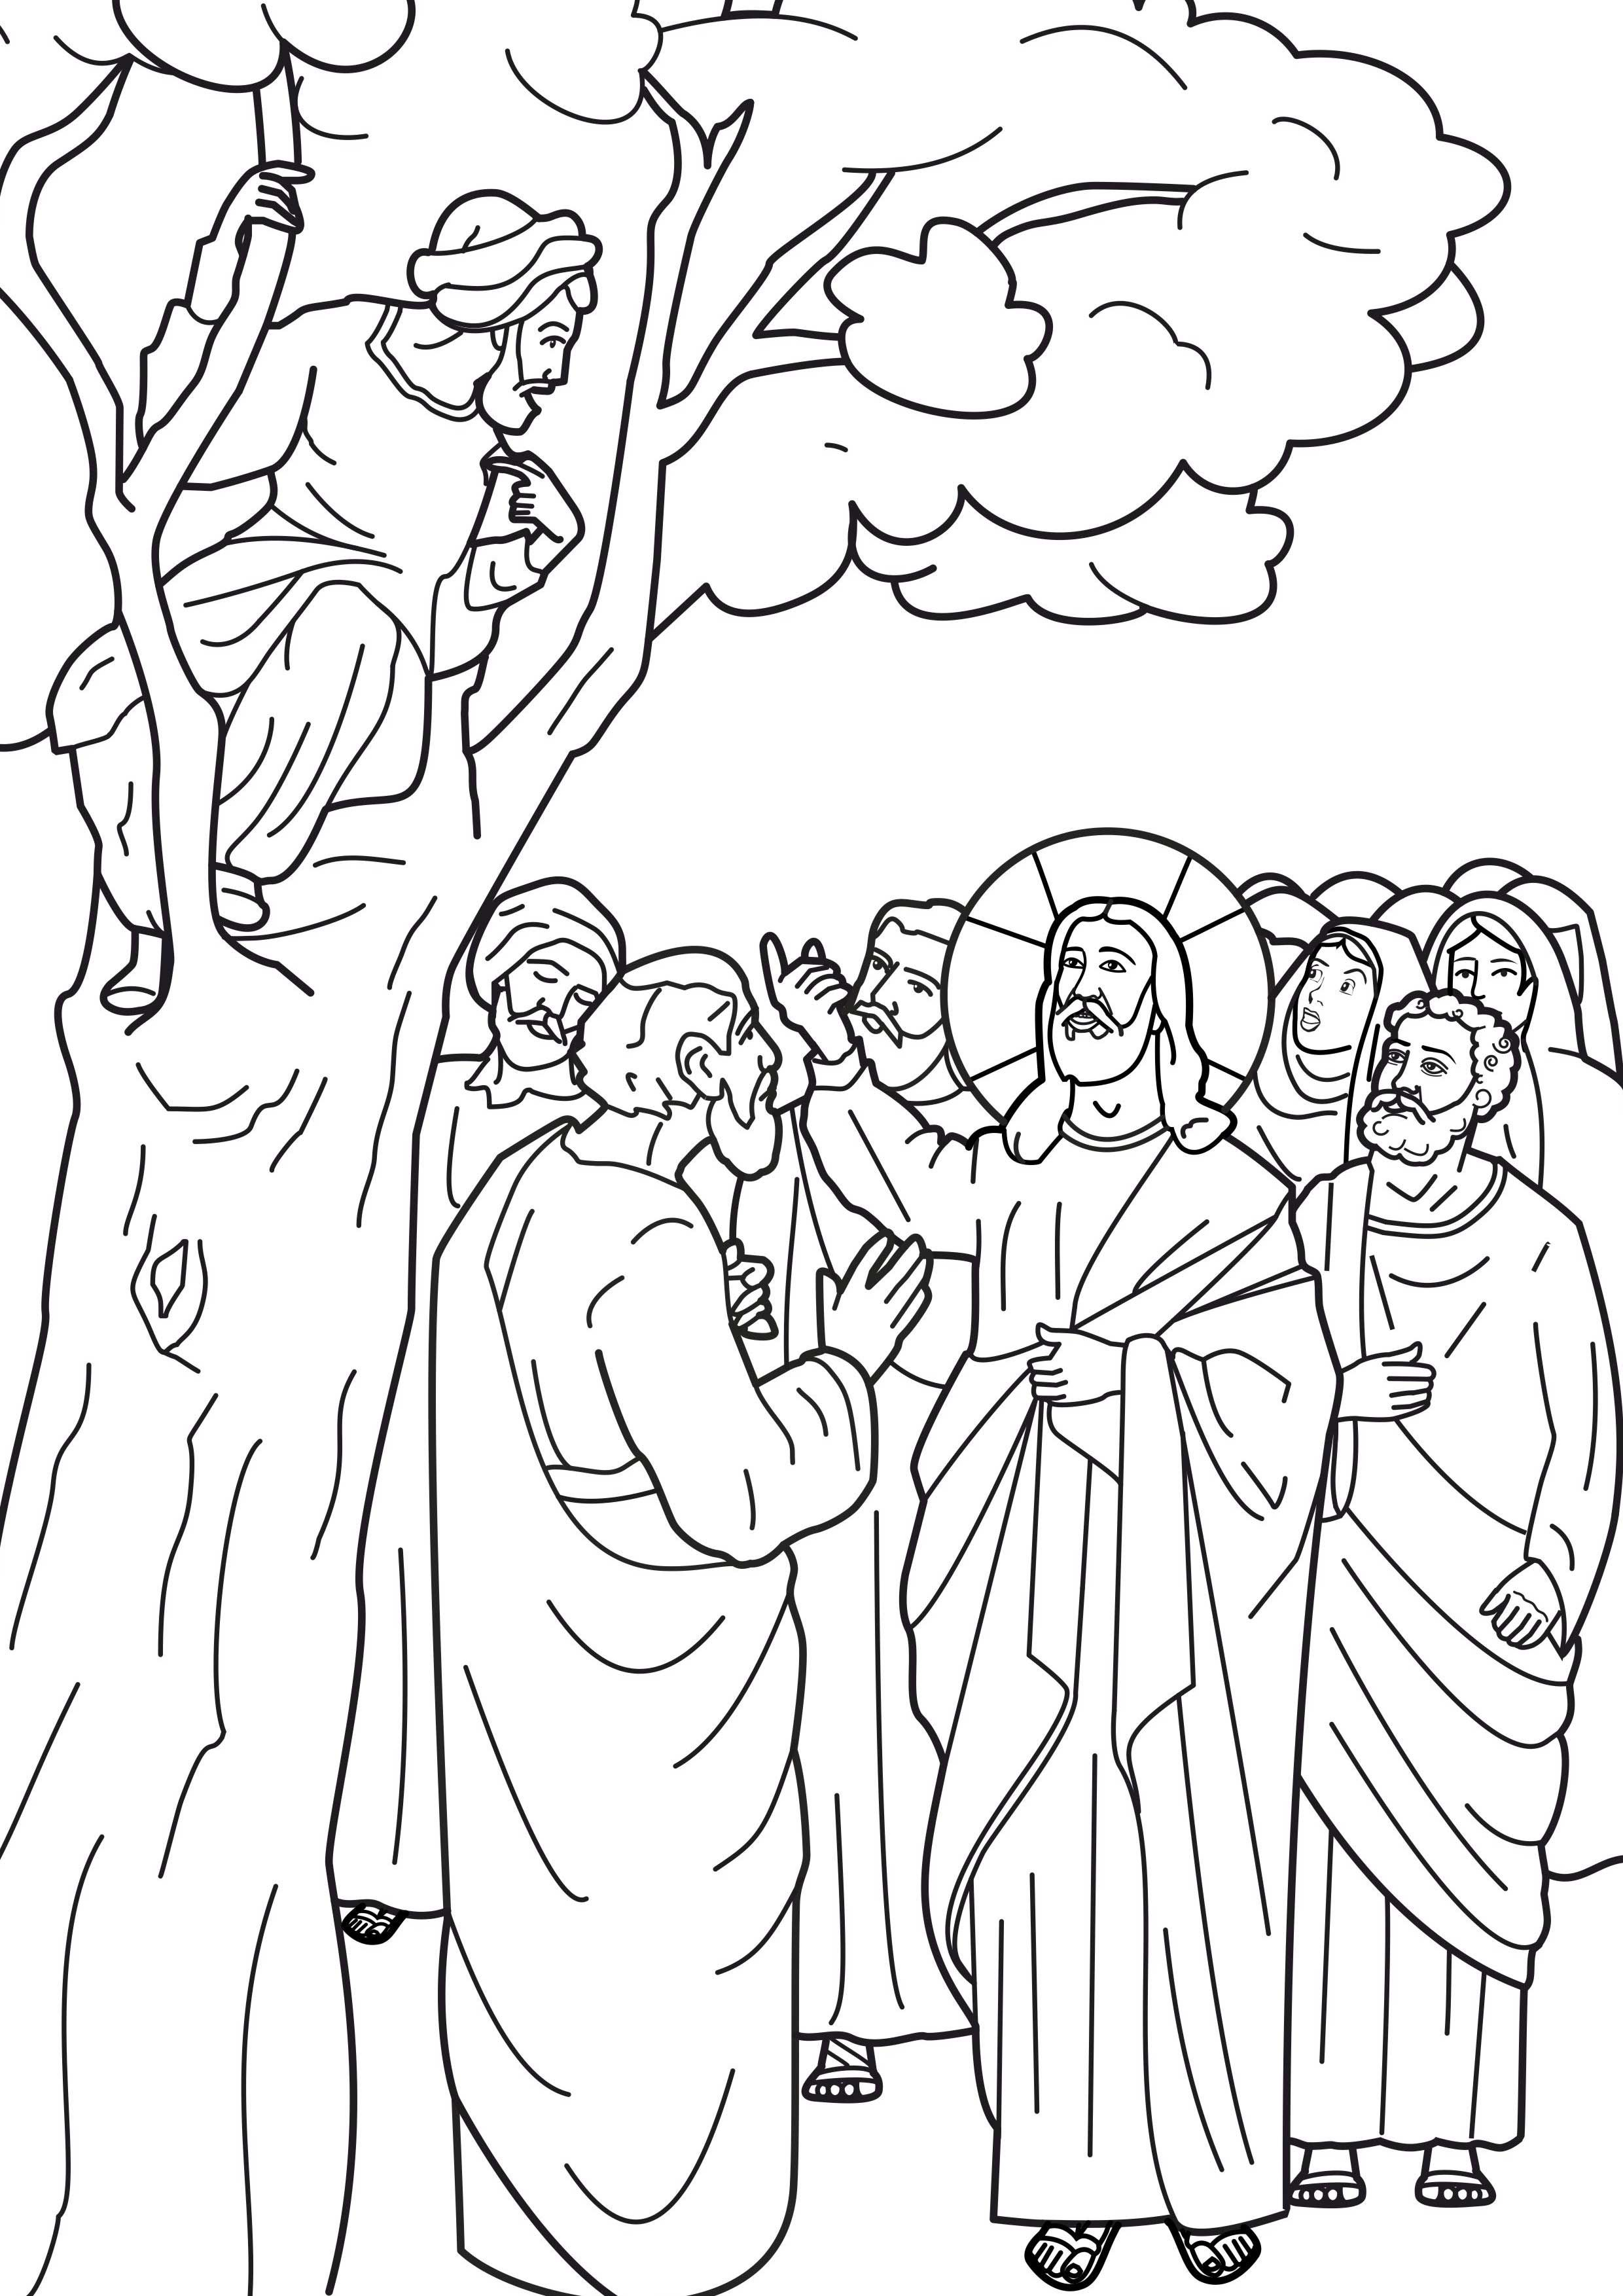 Coloring Pictures For Holy Bible Love Coloring Pages Zacchaeus Bible Coloring Pages